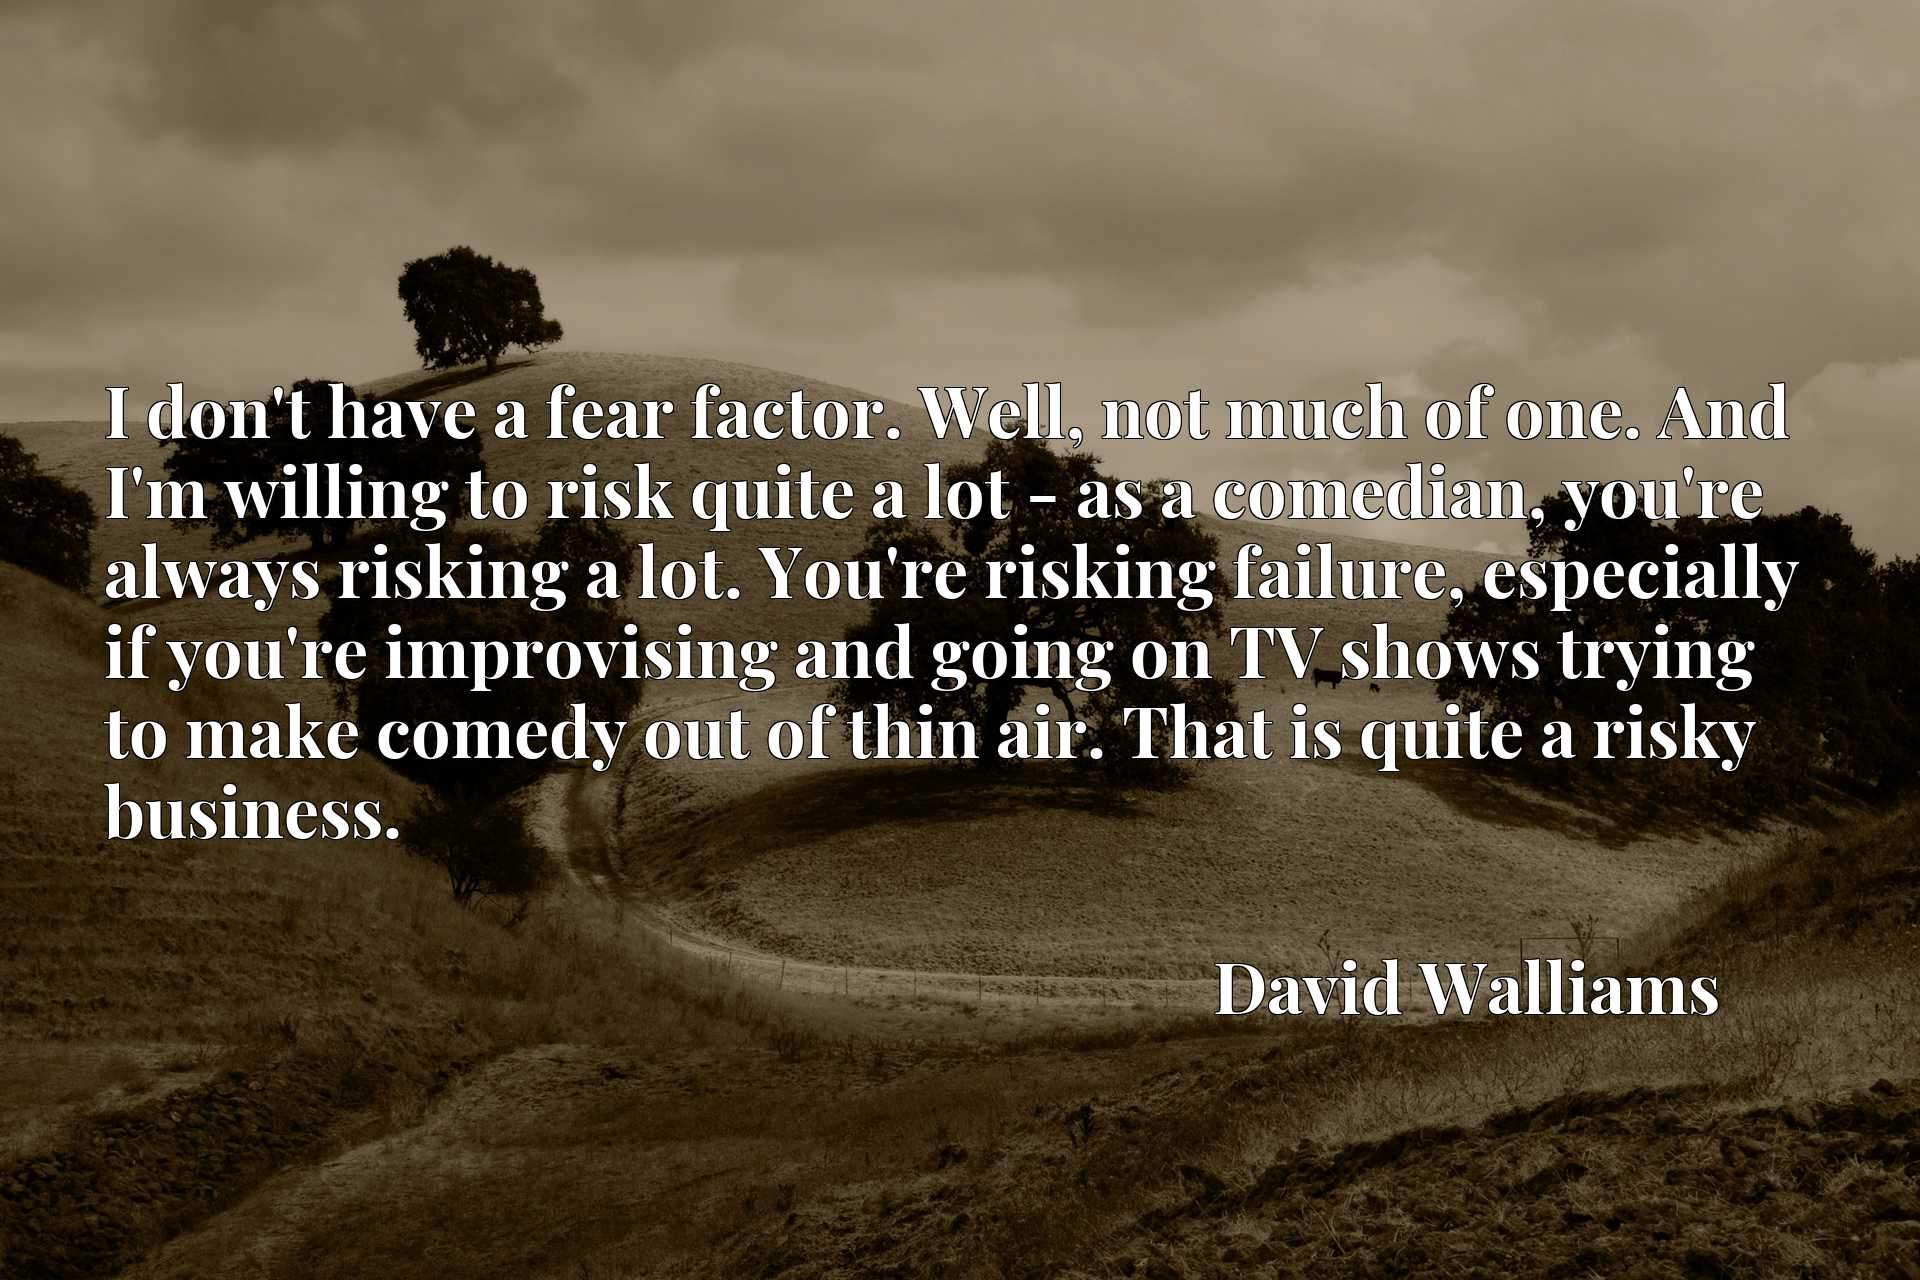 I don't have a fear factor. Well, not much of one. And I'm willing to risk quite a lot - as a comedian, you're always risking a lot. You're risking failure, especially if you're improvising and going on TV shows trying to make comedy out of thin air. That is quite a risky business.